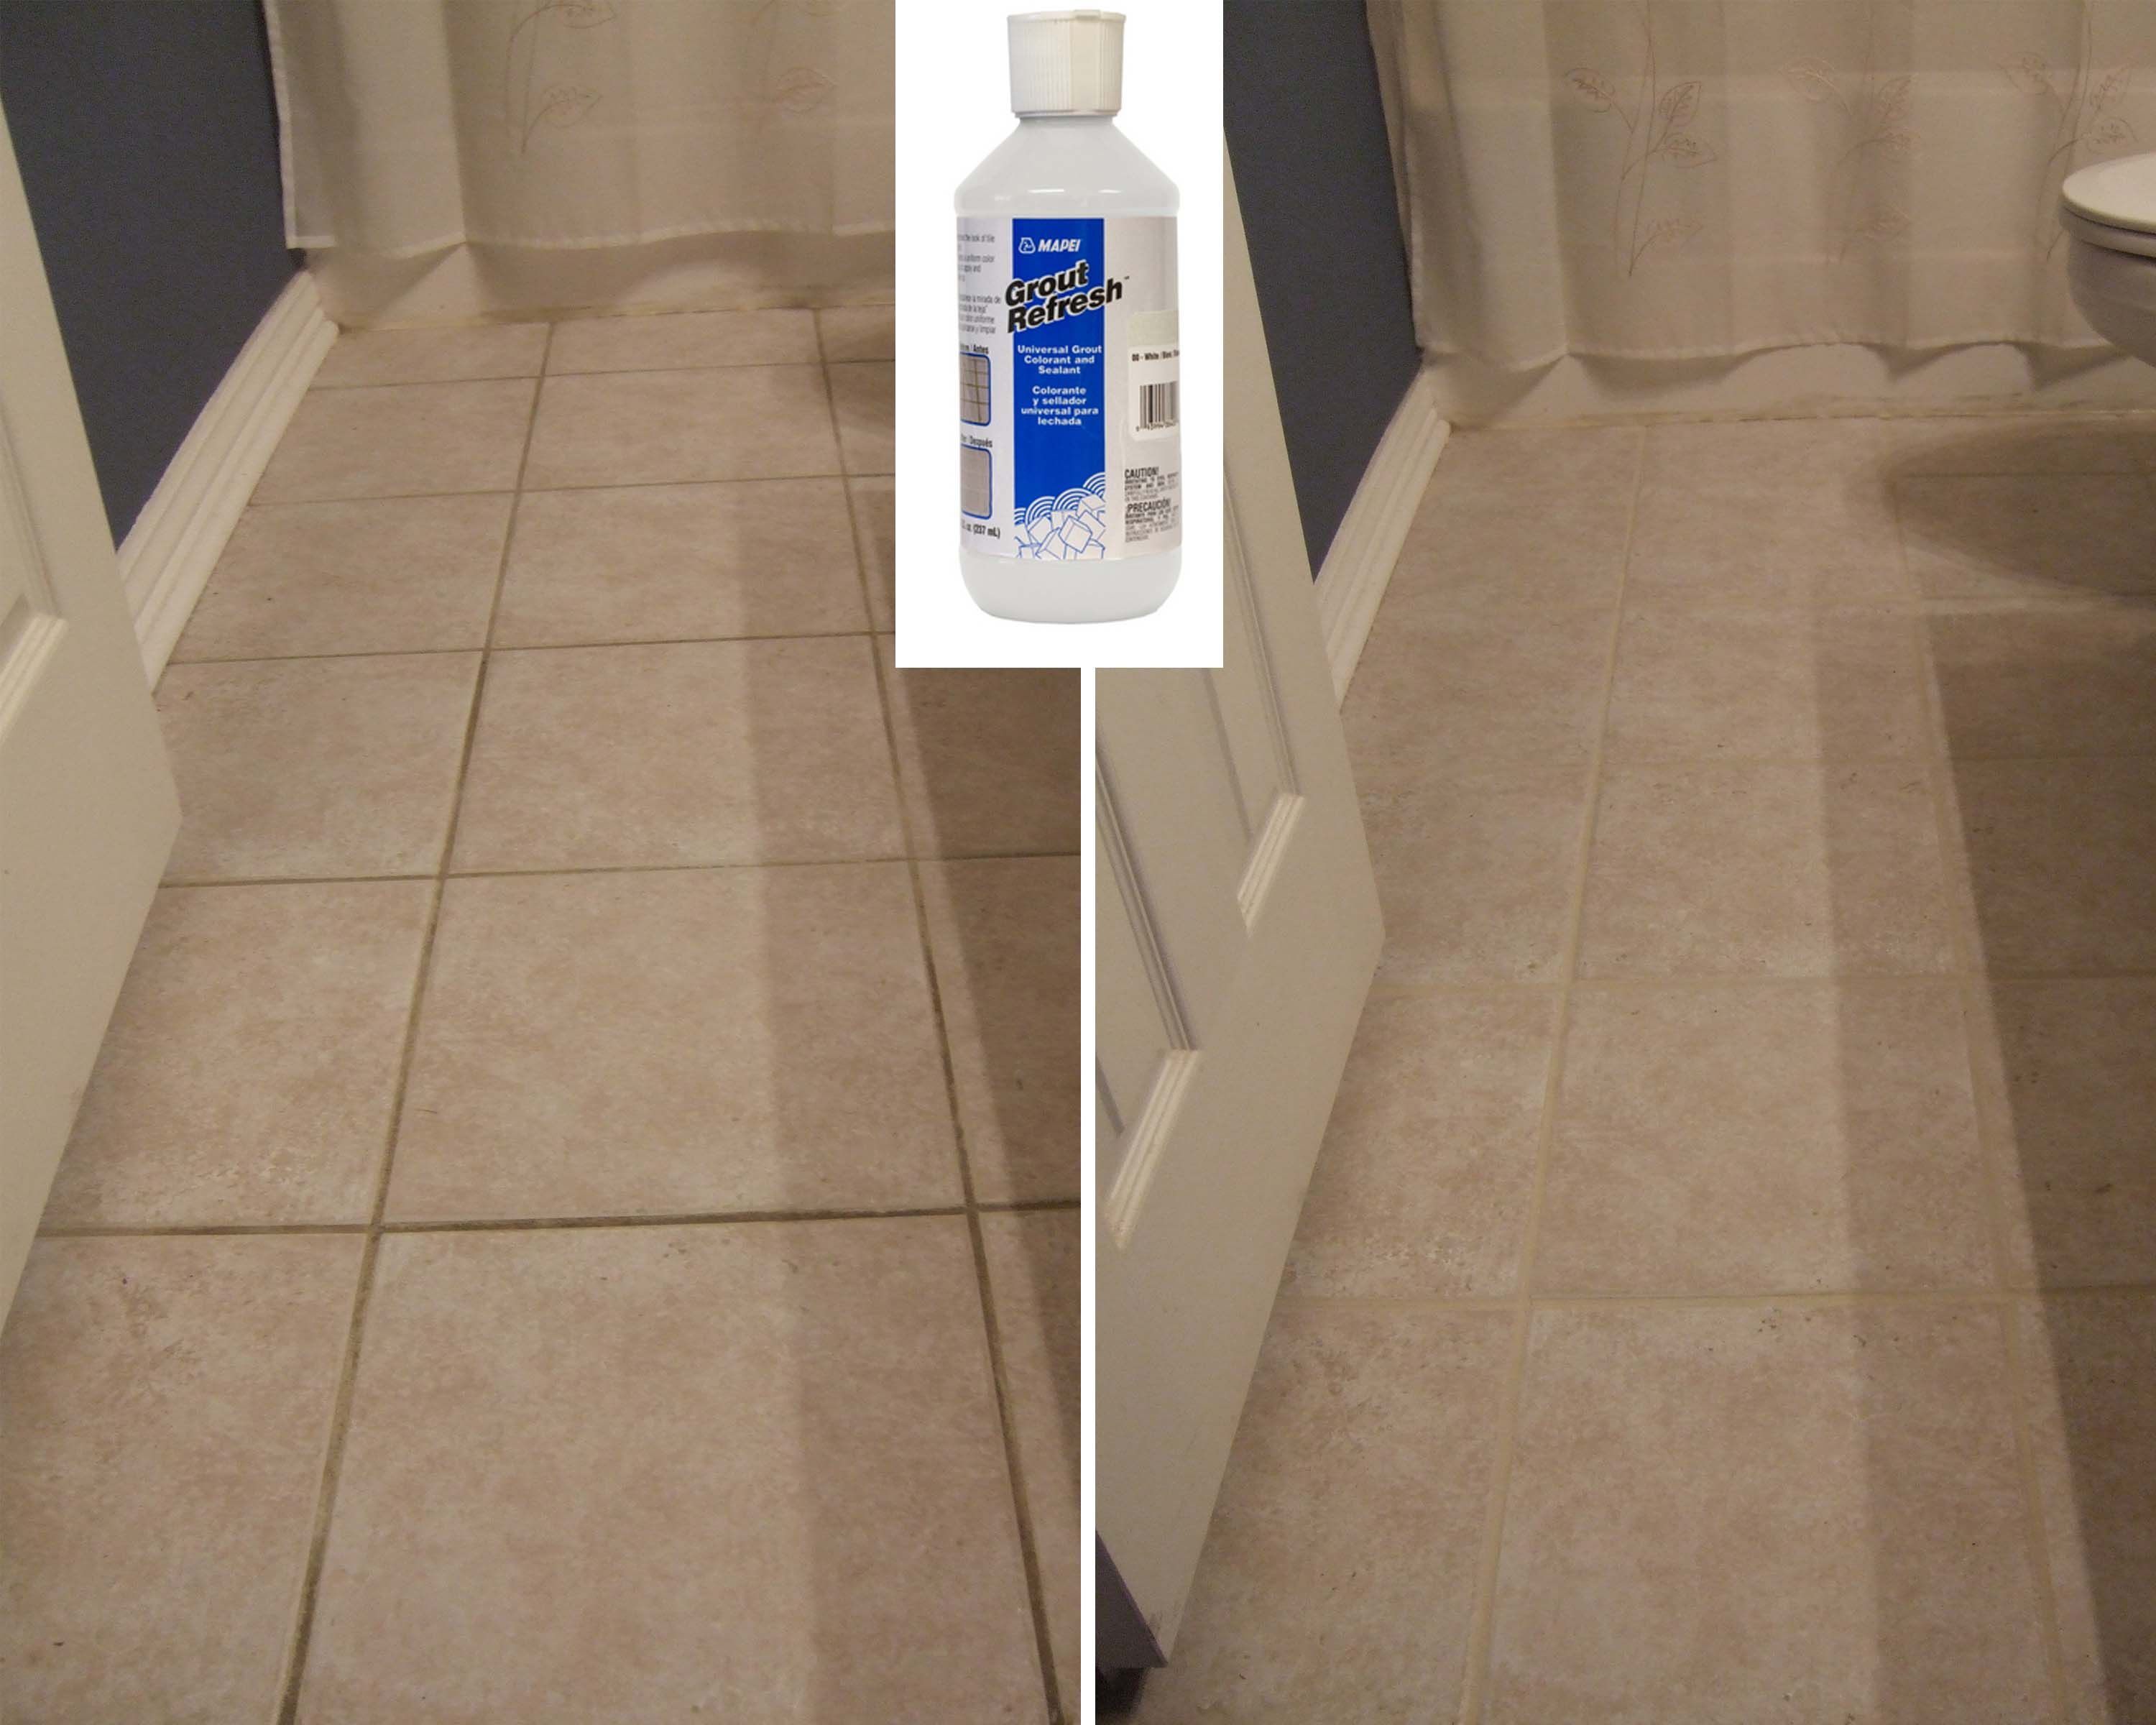 How To Clean Grout With Peroxide Baking Soda Cleaning Hacks